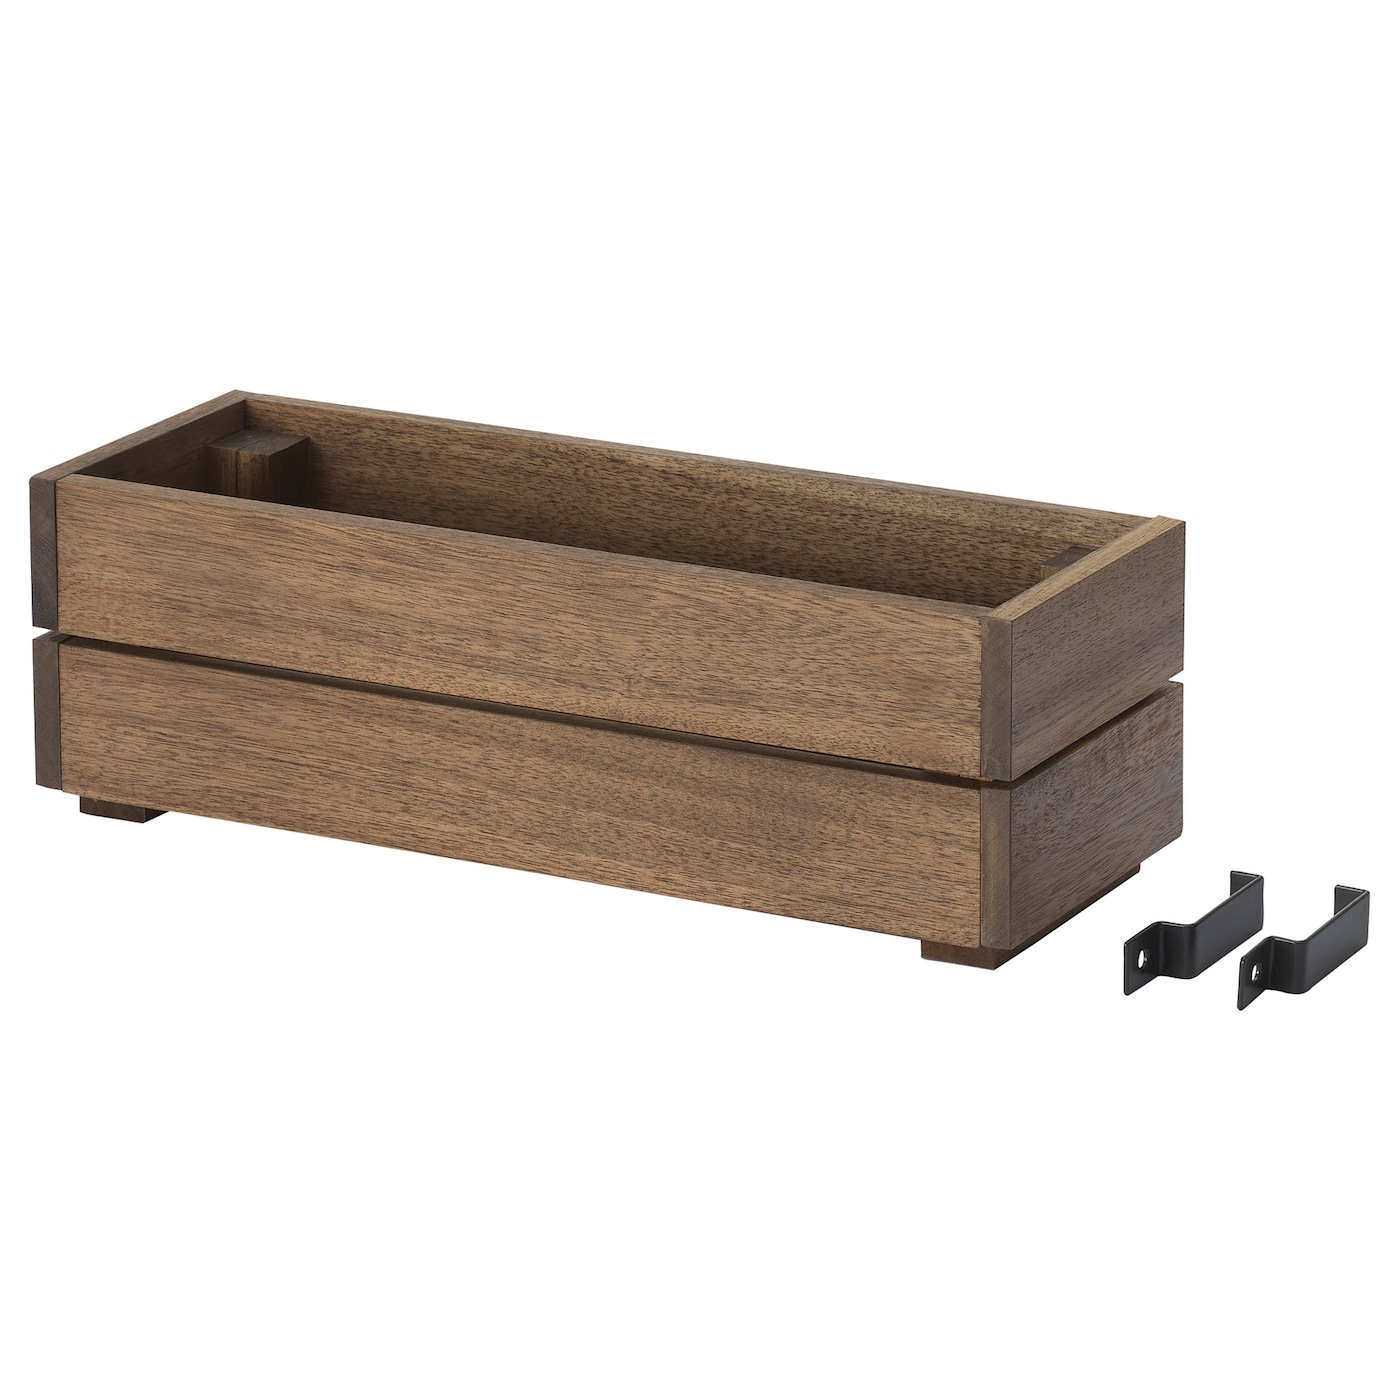 IKEA SOMMAR 2018 flower box Can be also hanged on the wall with the included hooks.